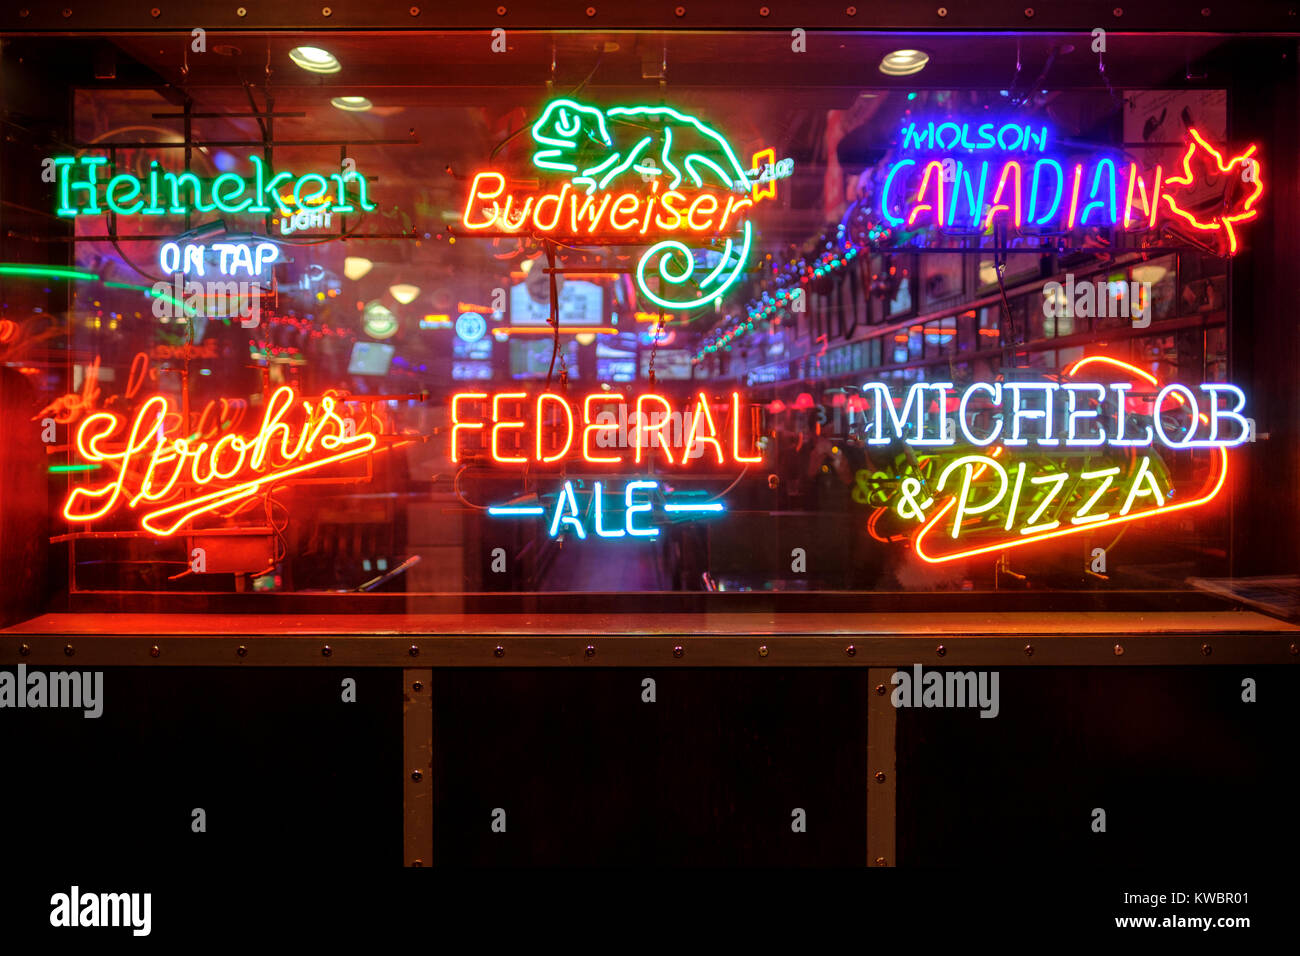 Beer Logos Neon Lights Advertising Decorating Front Entrance Of